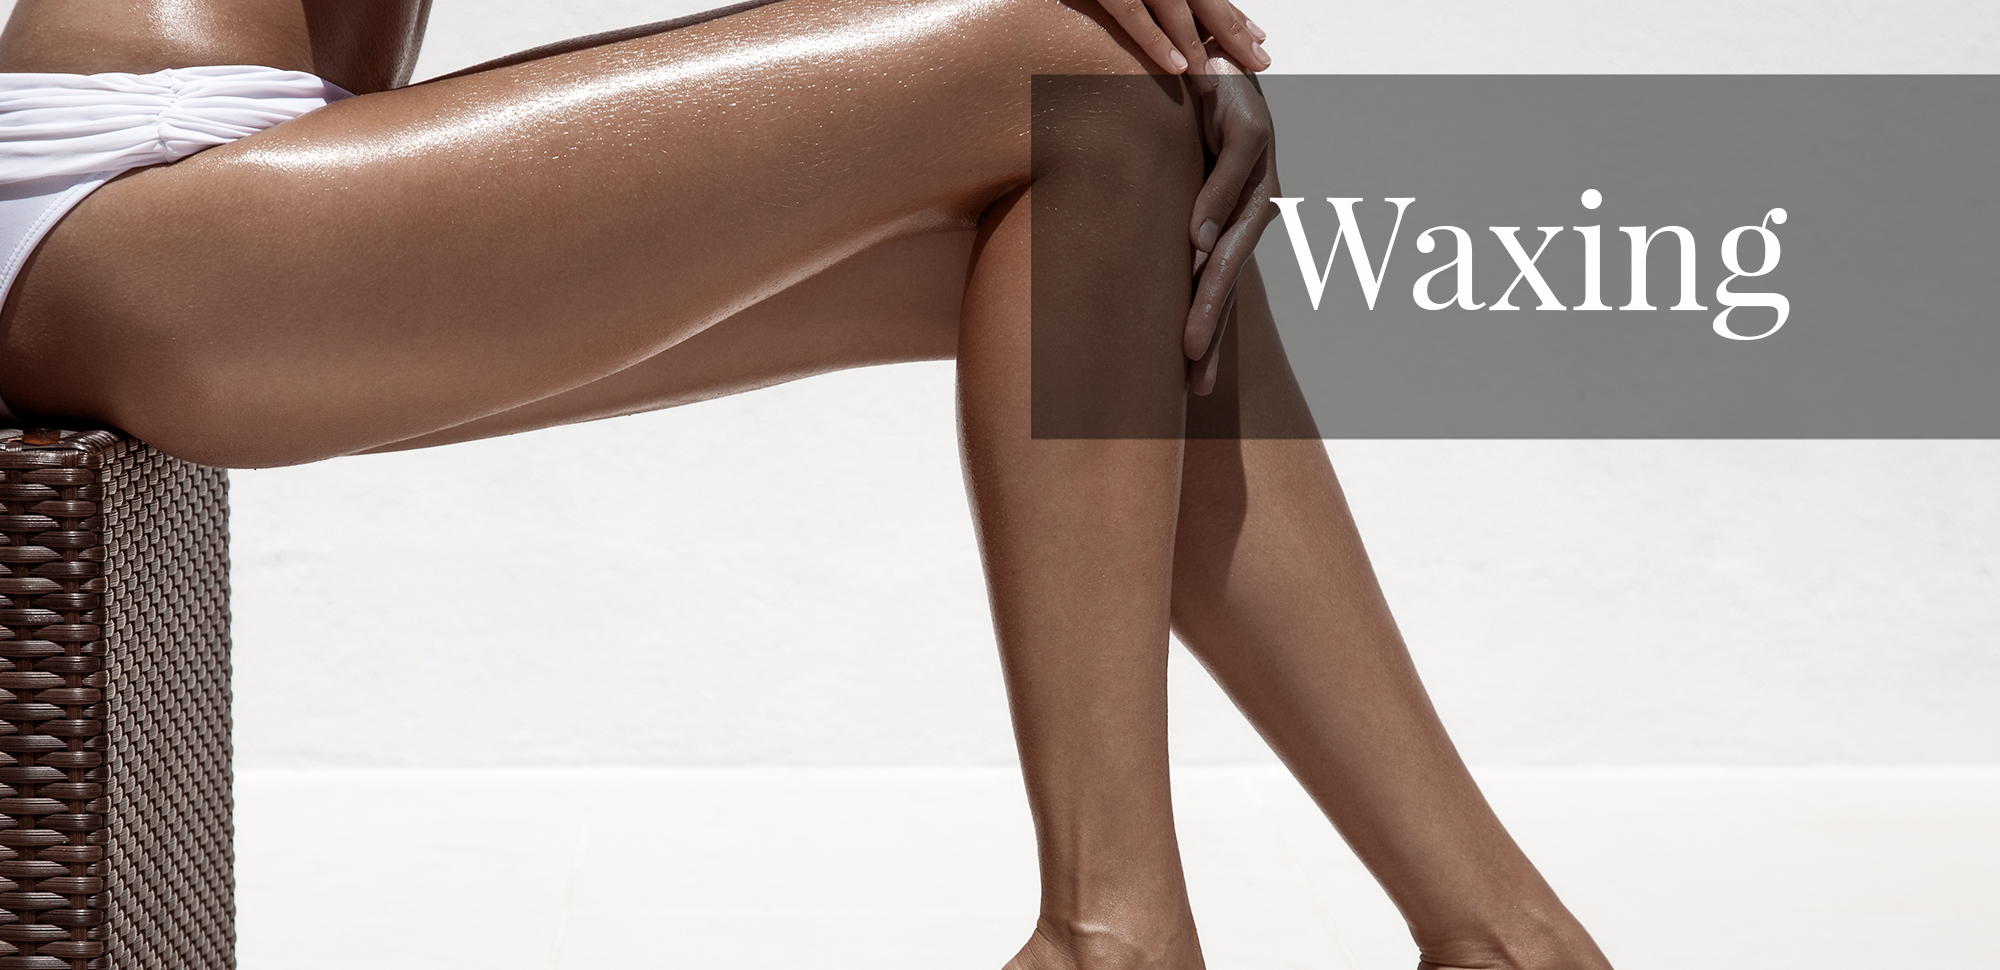 Kraze Beauty Lounge Kelowna Waxing